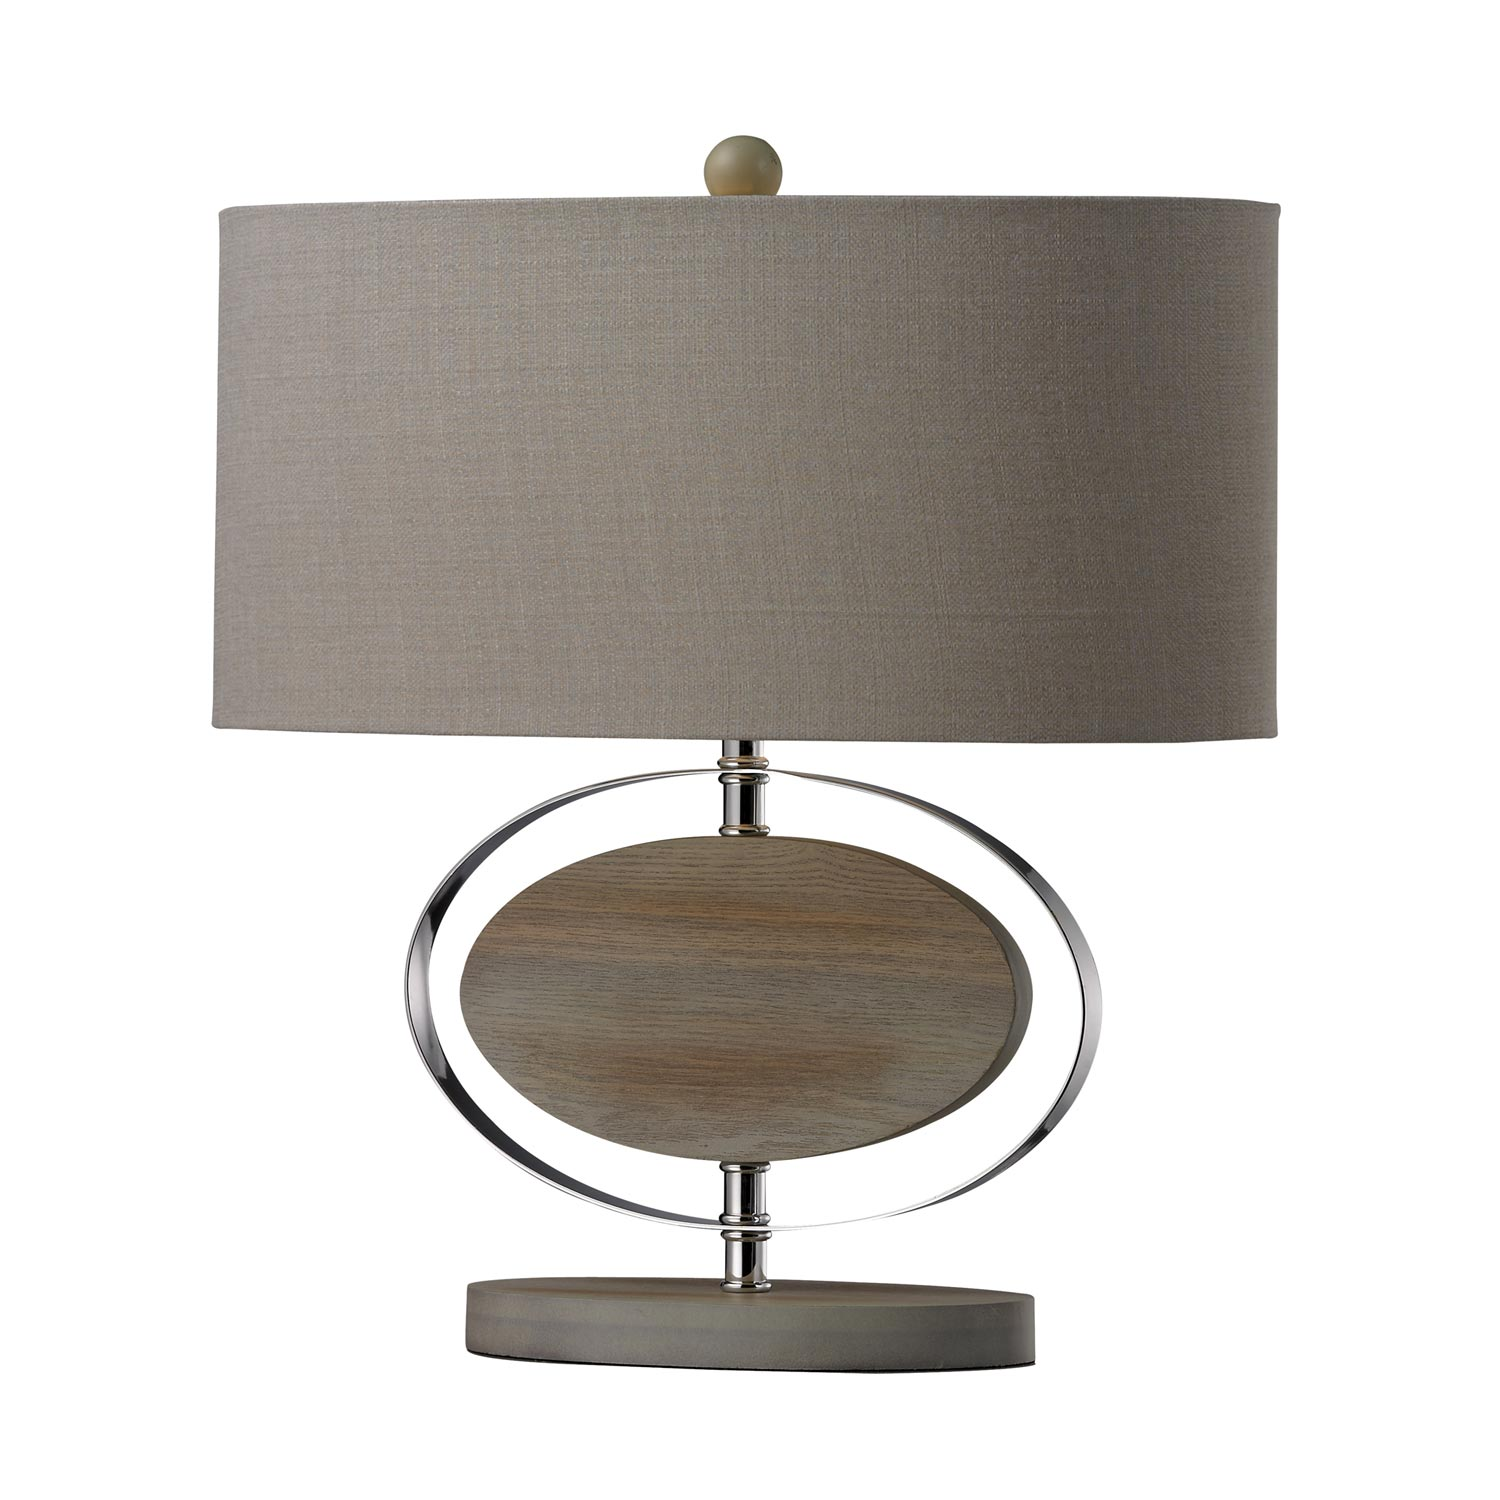 Elk Lighting D2296 Hereford Table Lamp - Bleached Wood with Chrom